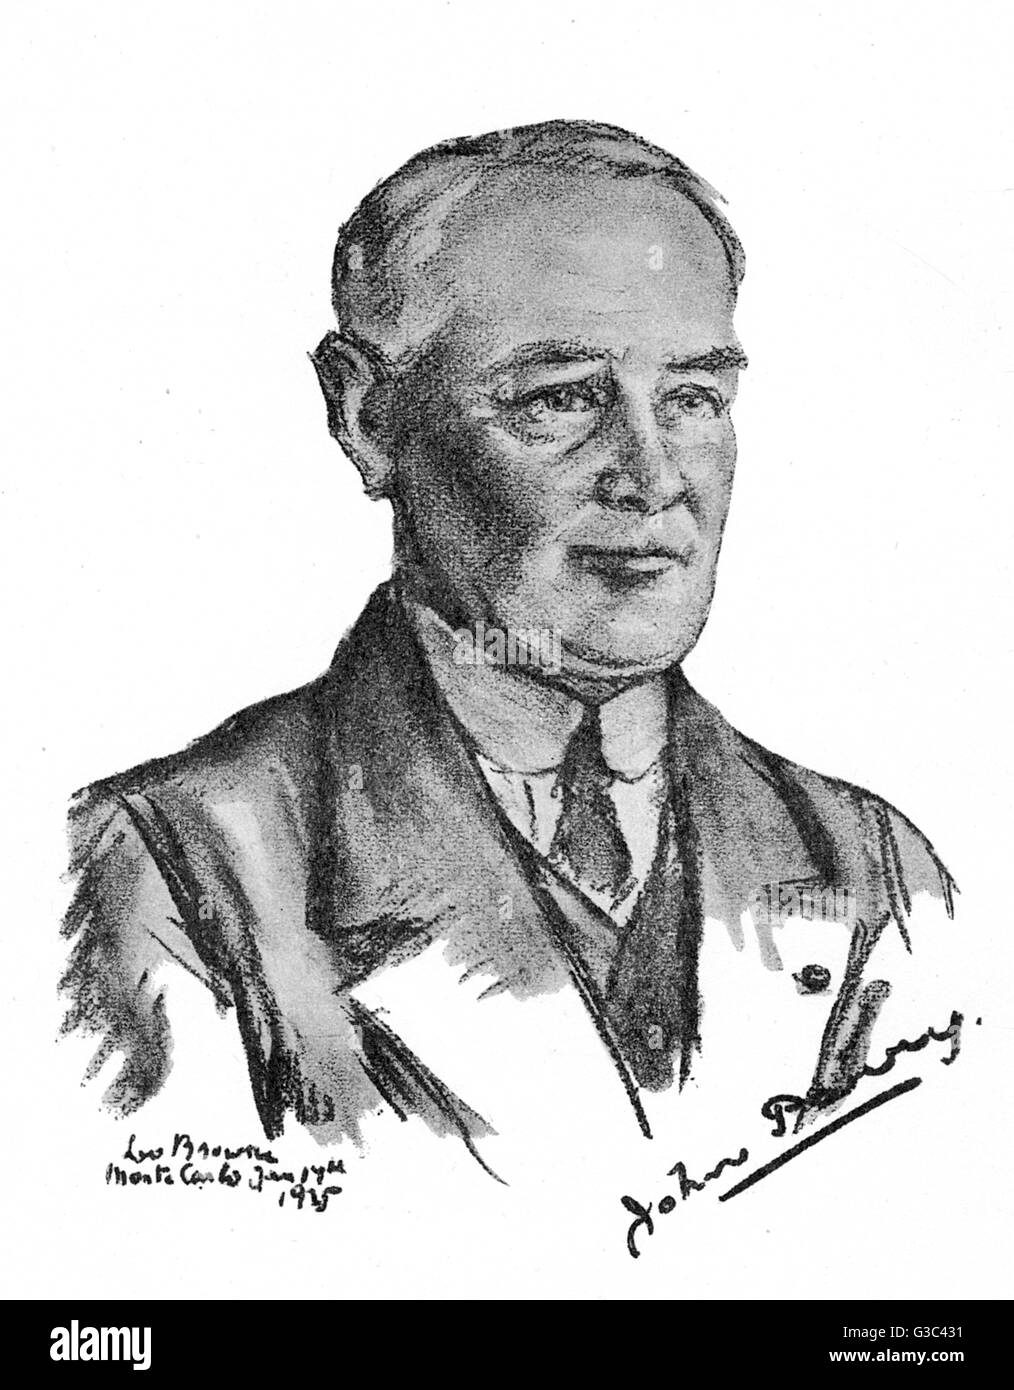 Rear Admiral (described here as Vice Admiral) Sir John Parry, hydrographer of the Royal Navy during the First World - Stock Image